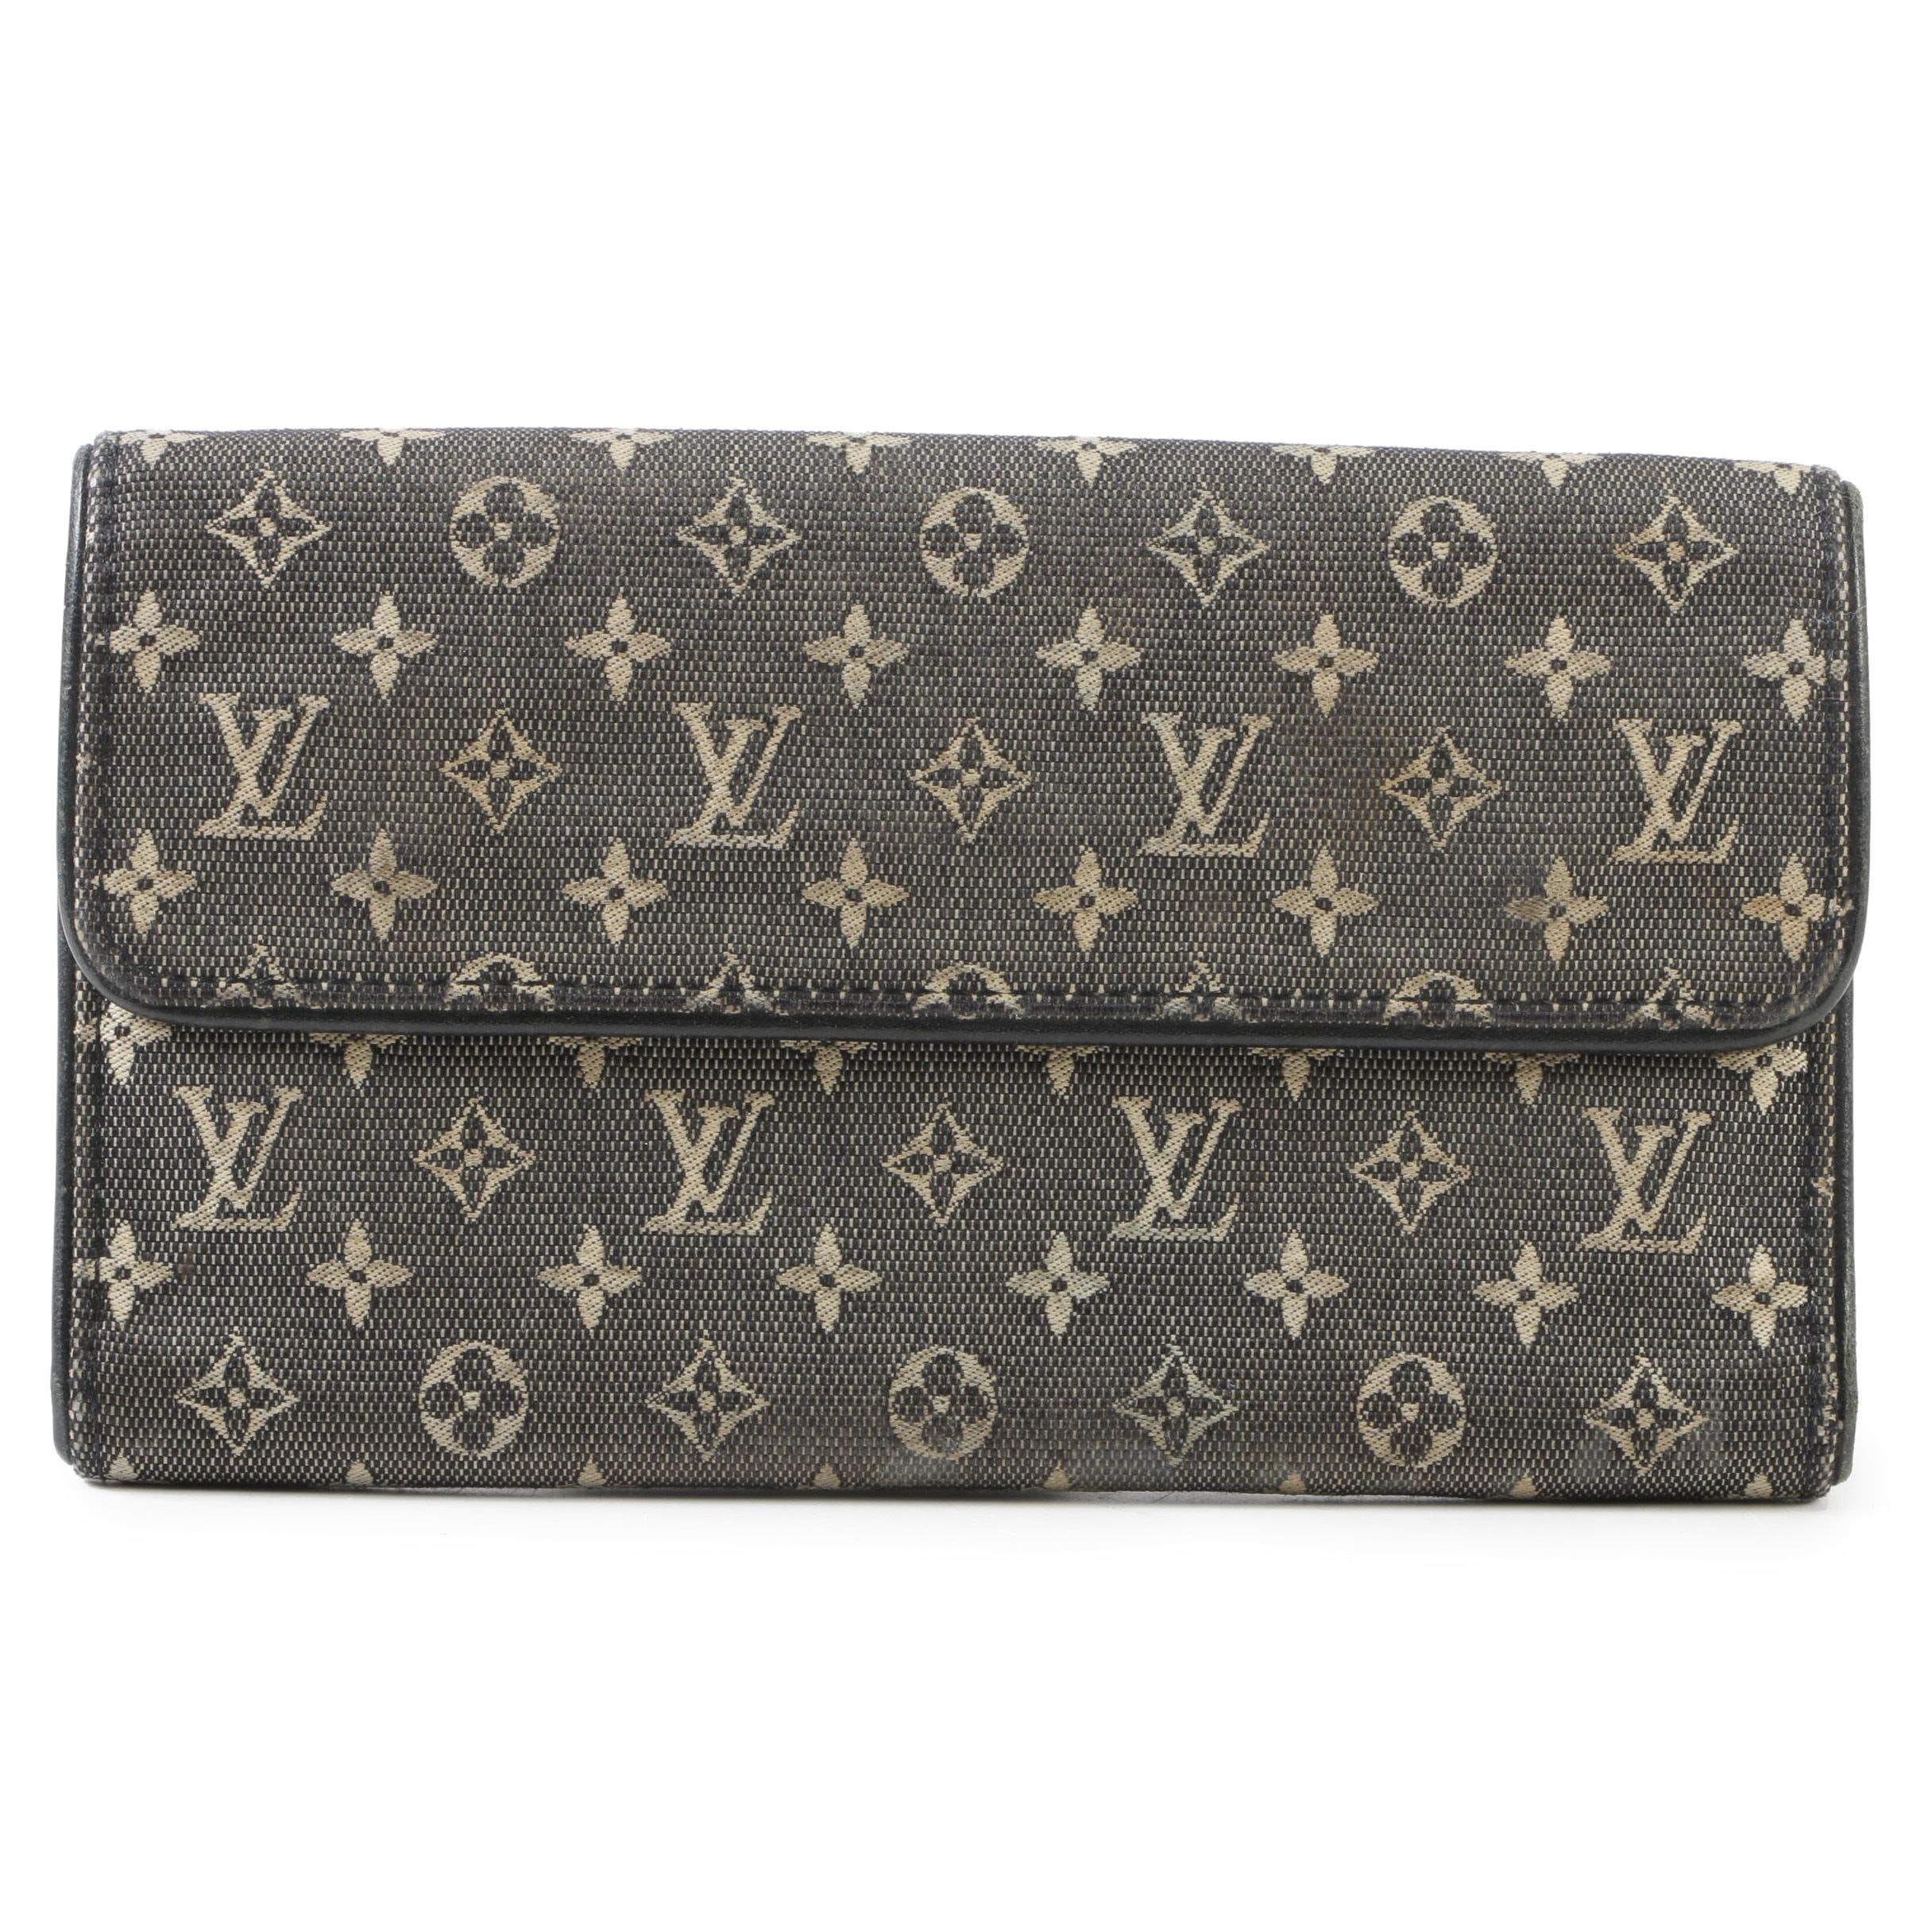 Louis Vuitton Paris Monogram Mini Lin Porte-Tresor International Wallet